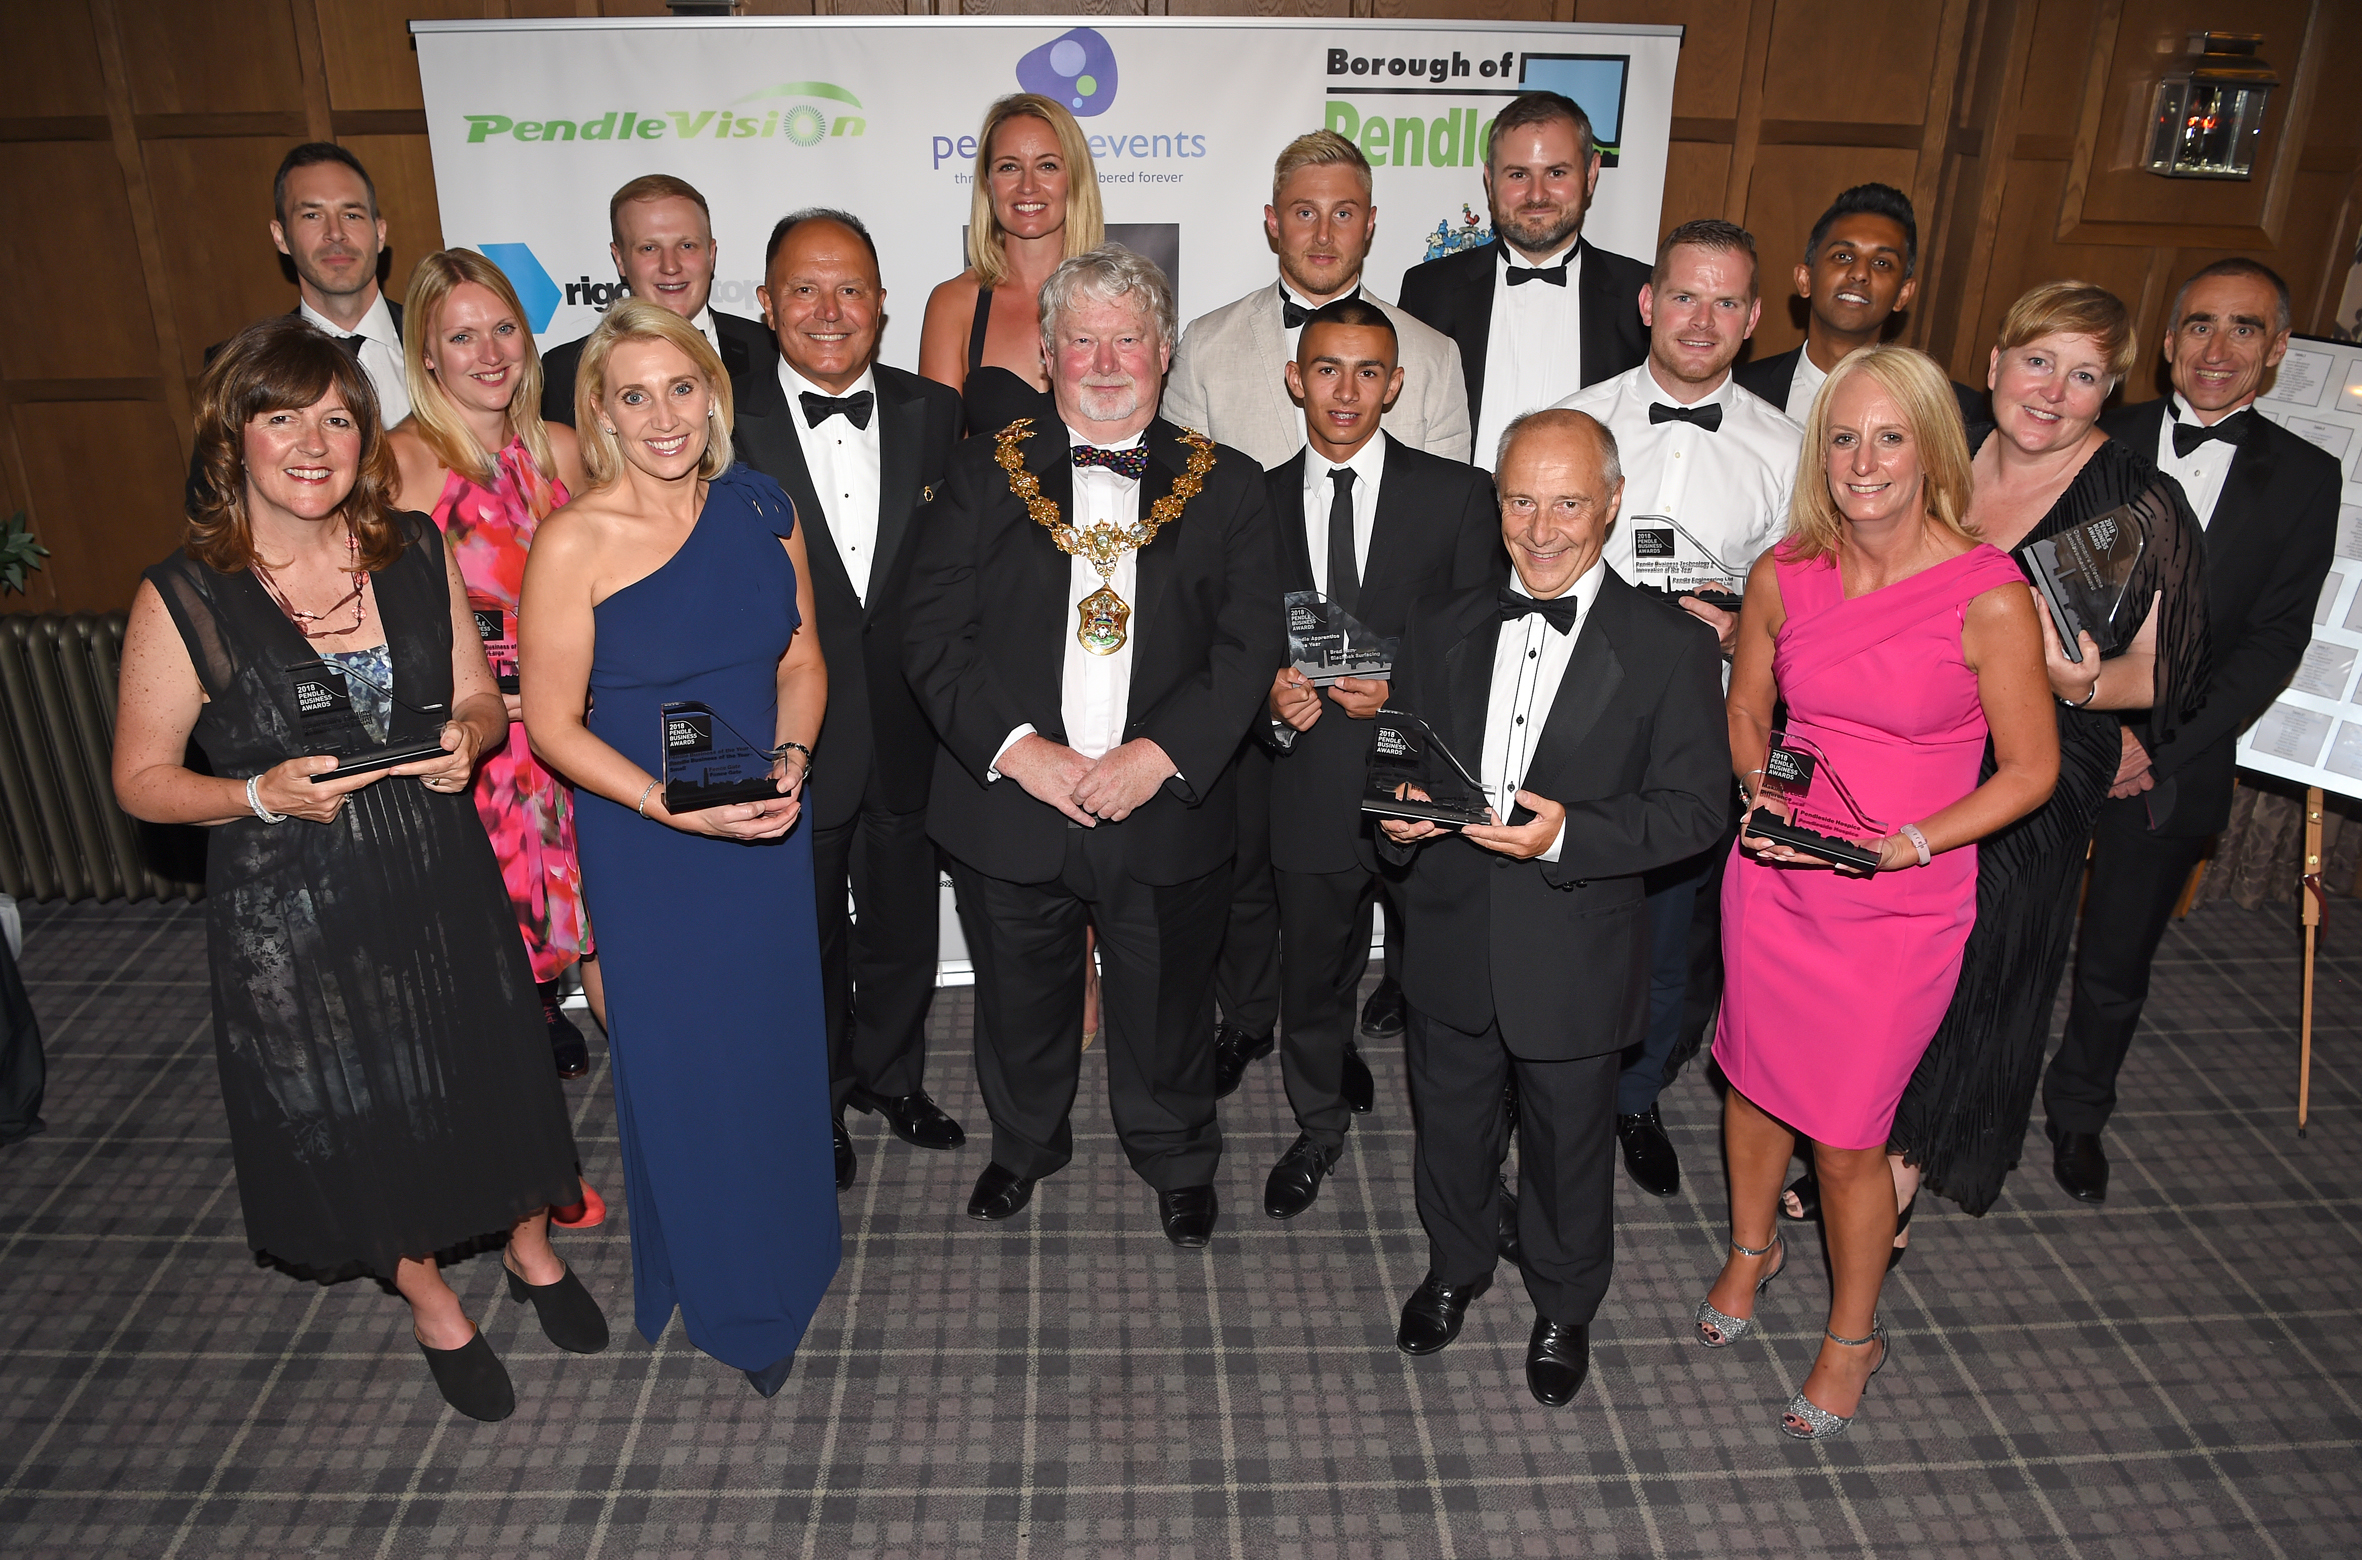 Pendle Business Awards 2018 – who scooped an award?